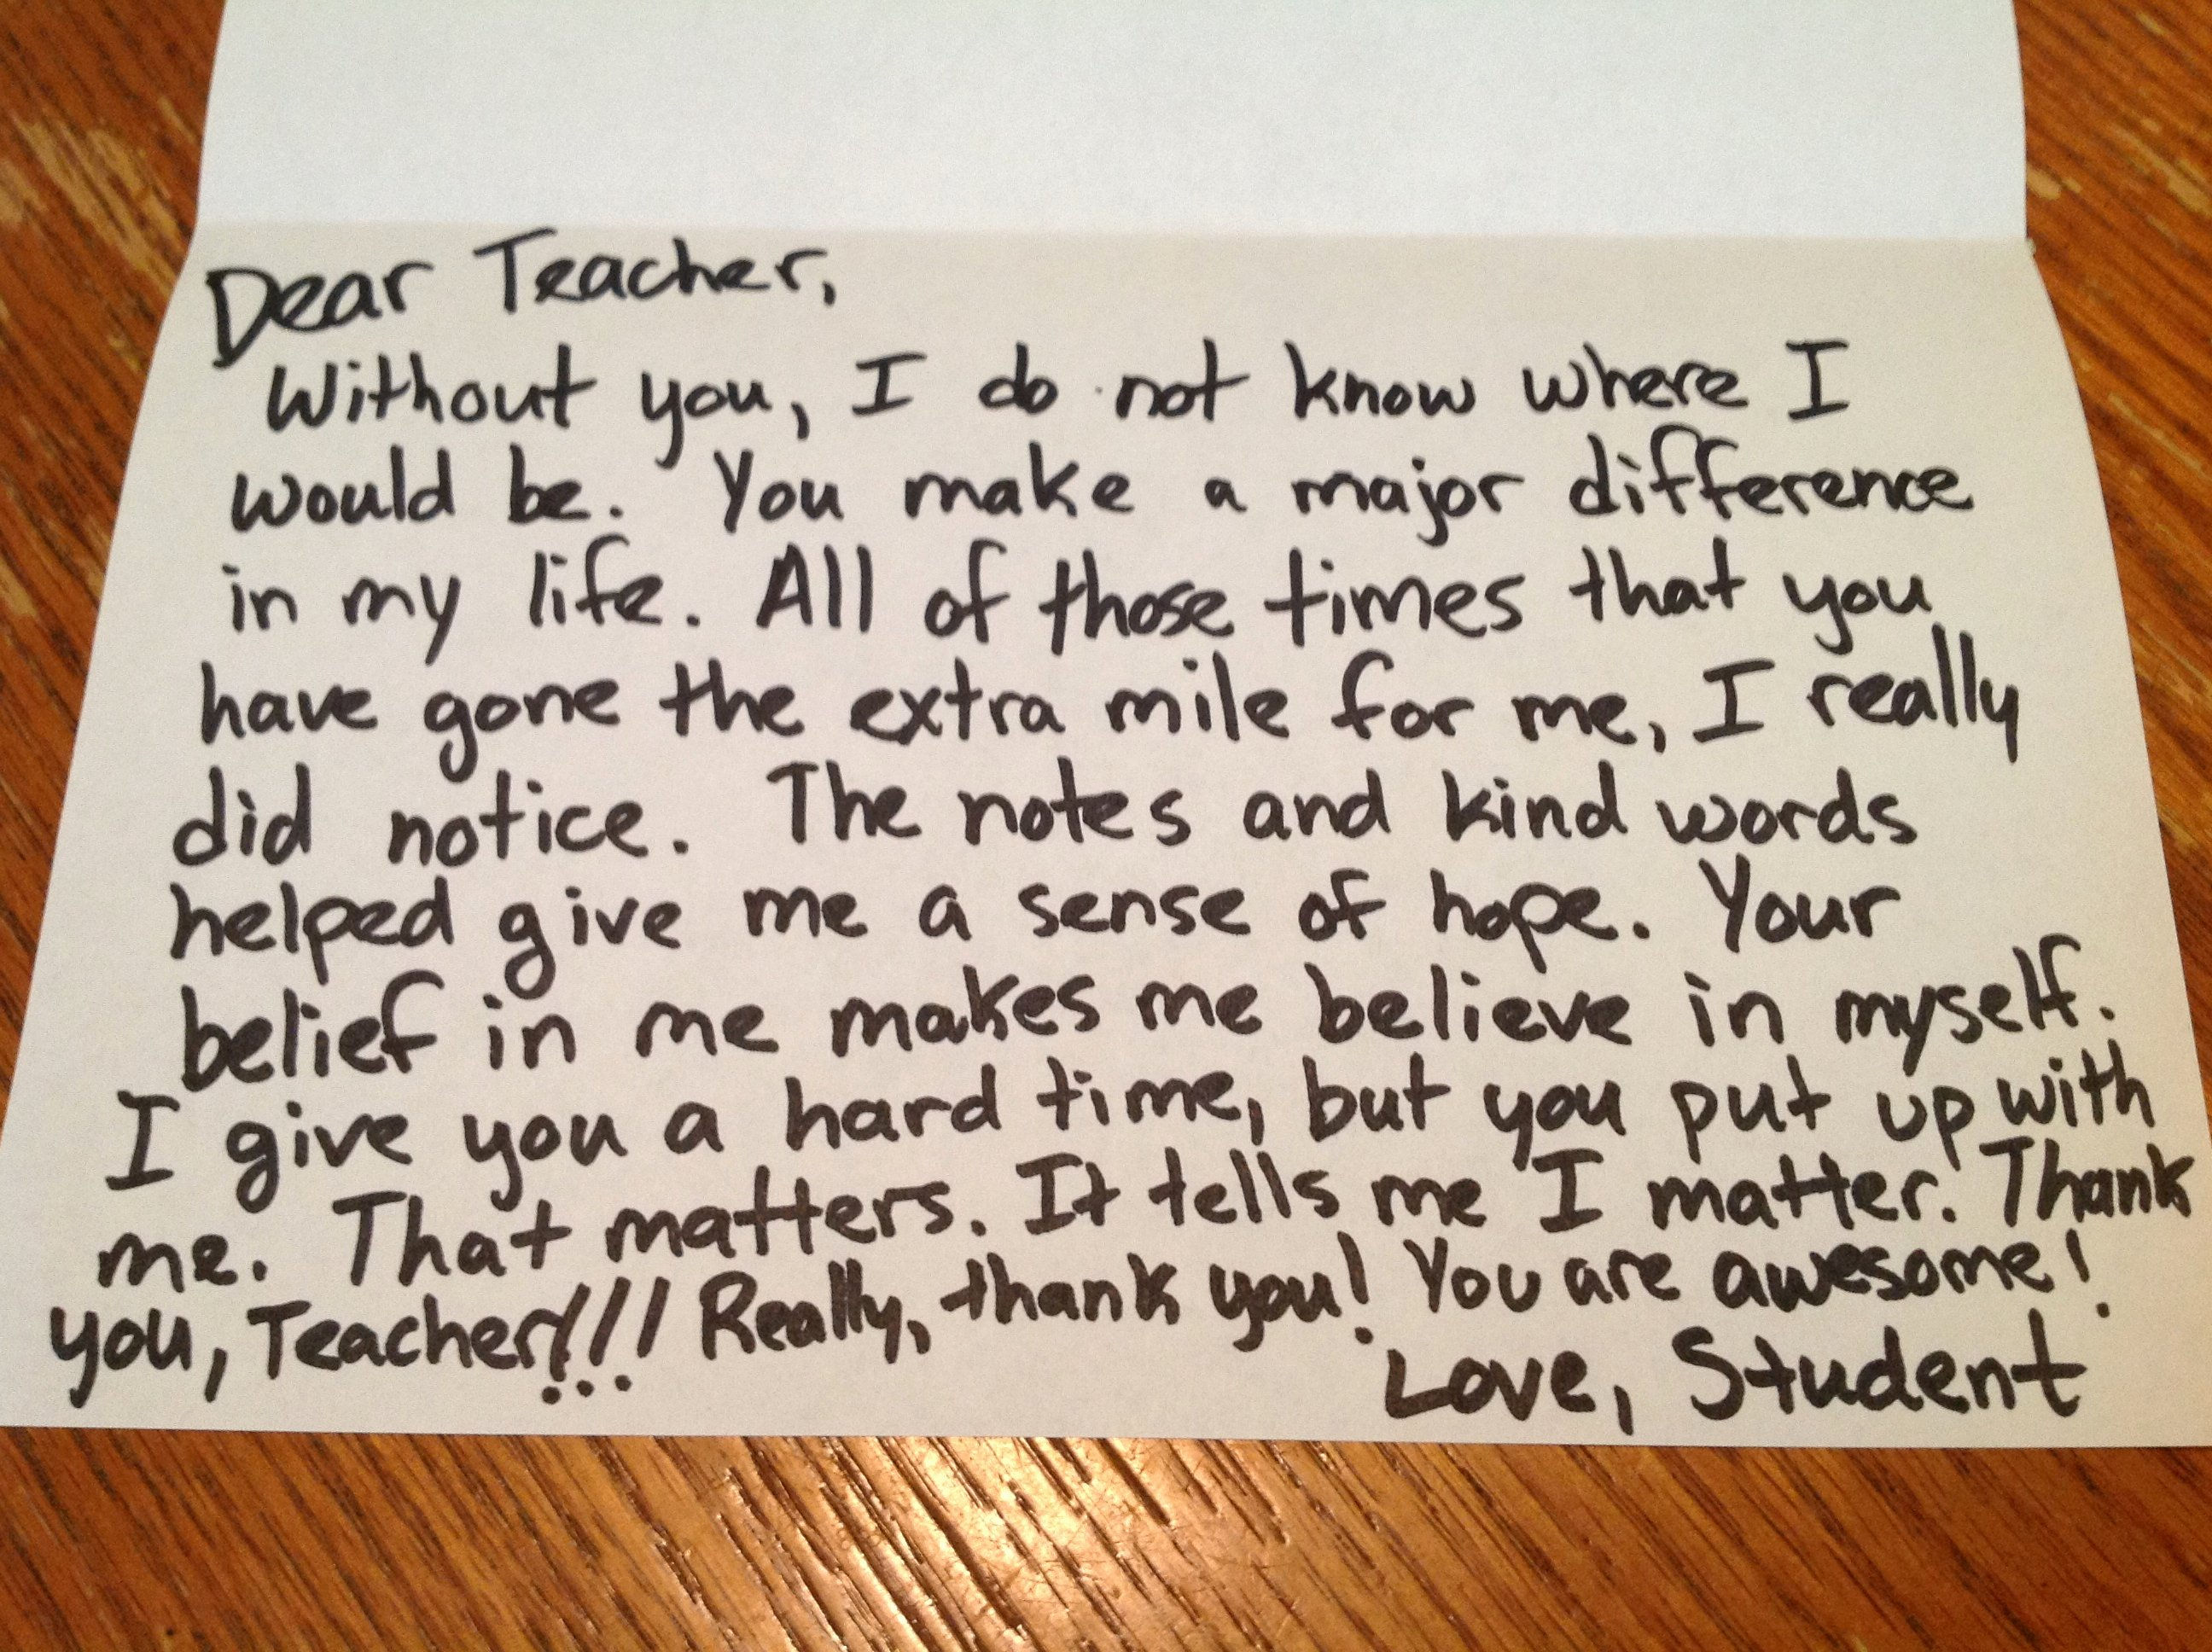 Thank You Note Teacher Lovely the Thank You Note You May Never Get – Dear Teacher Love